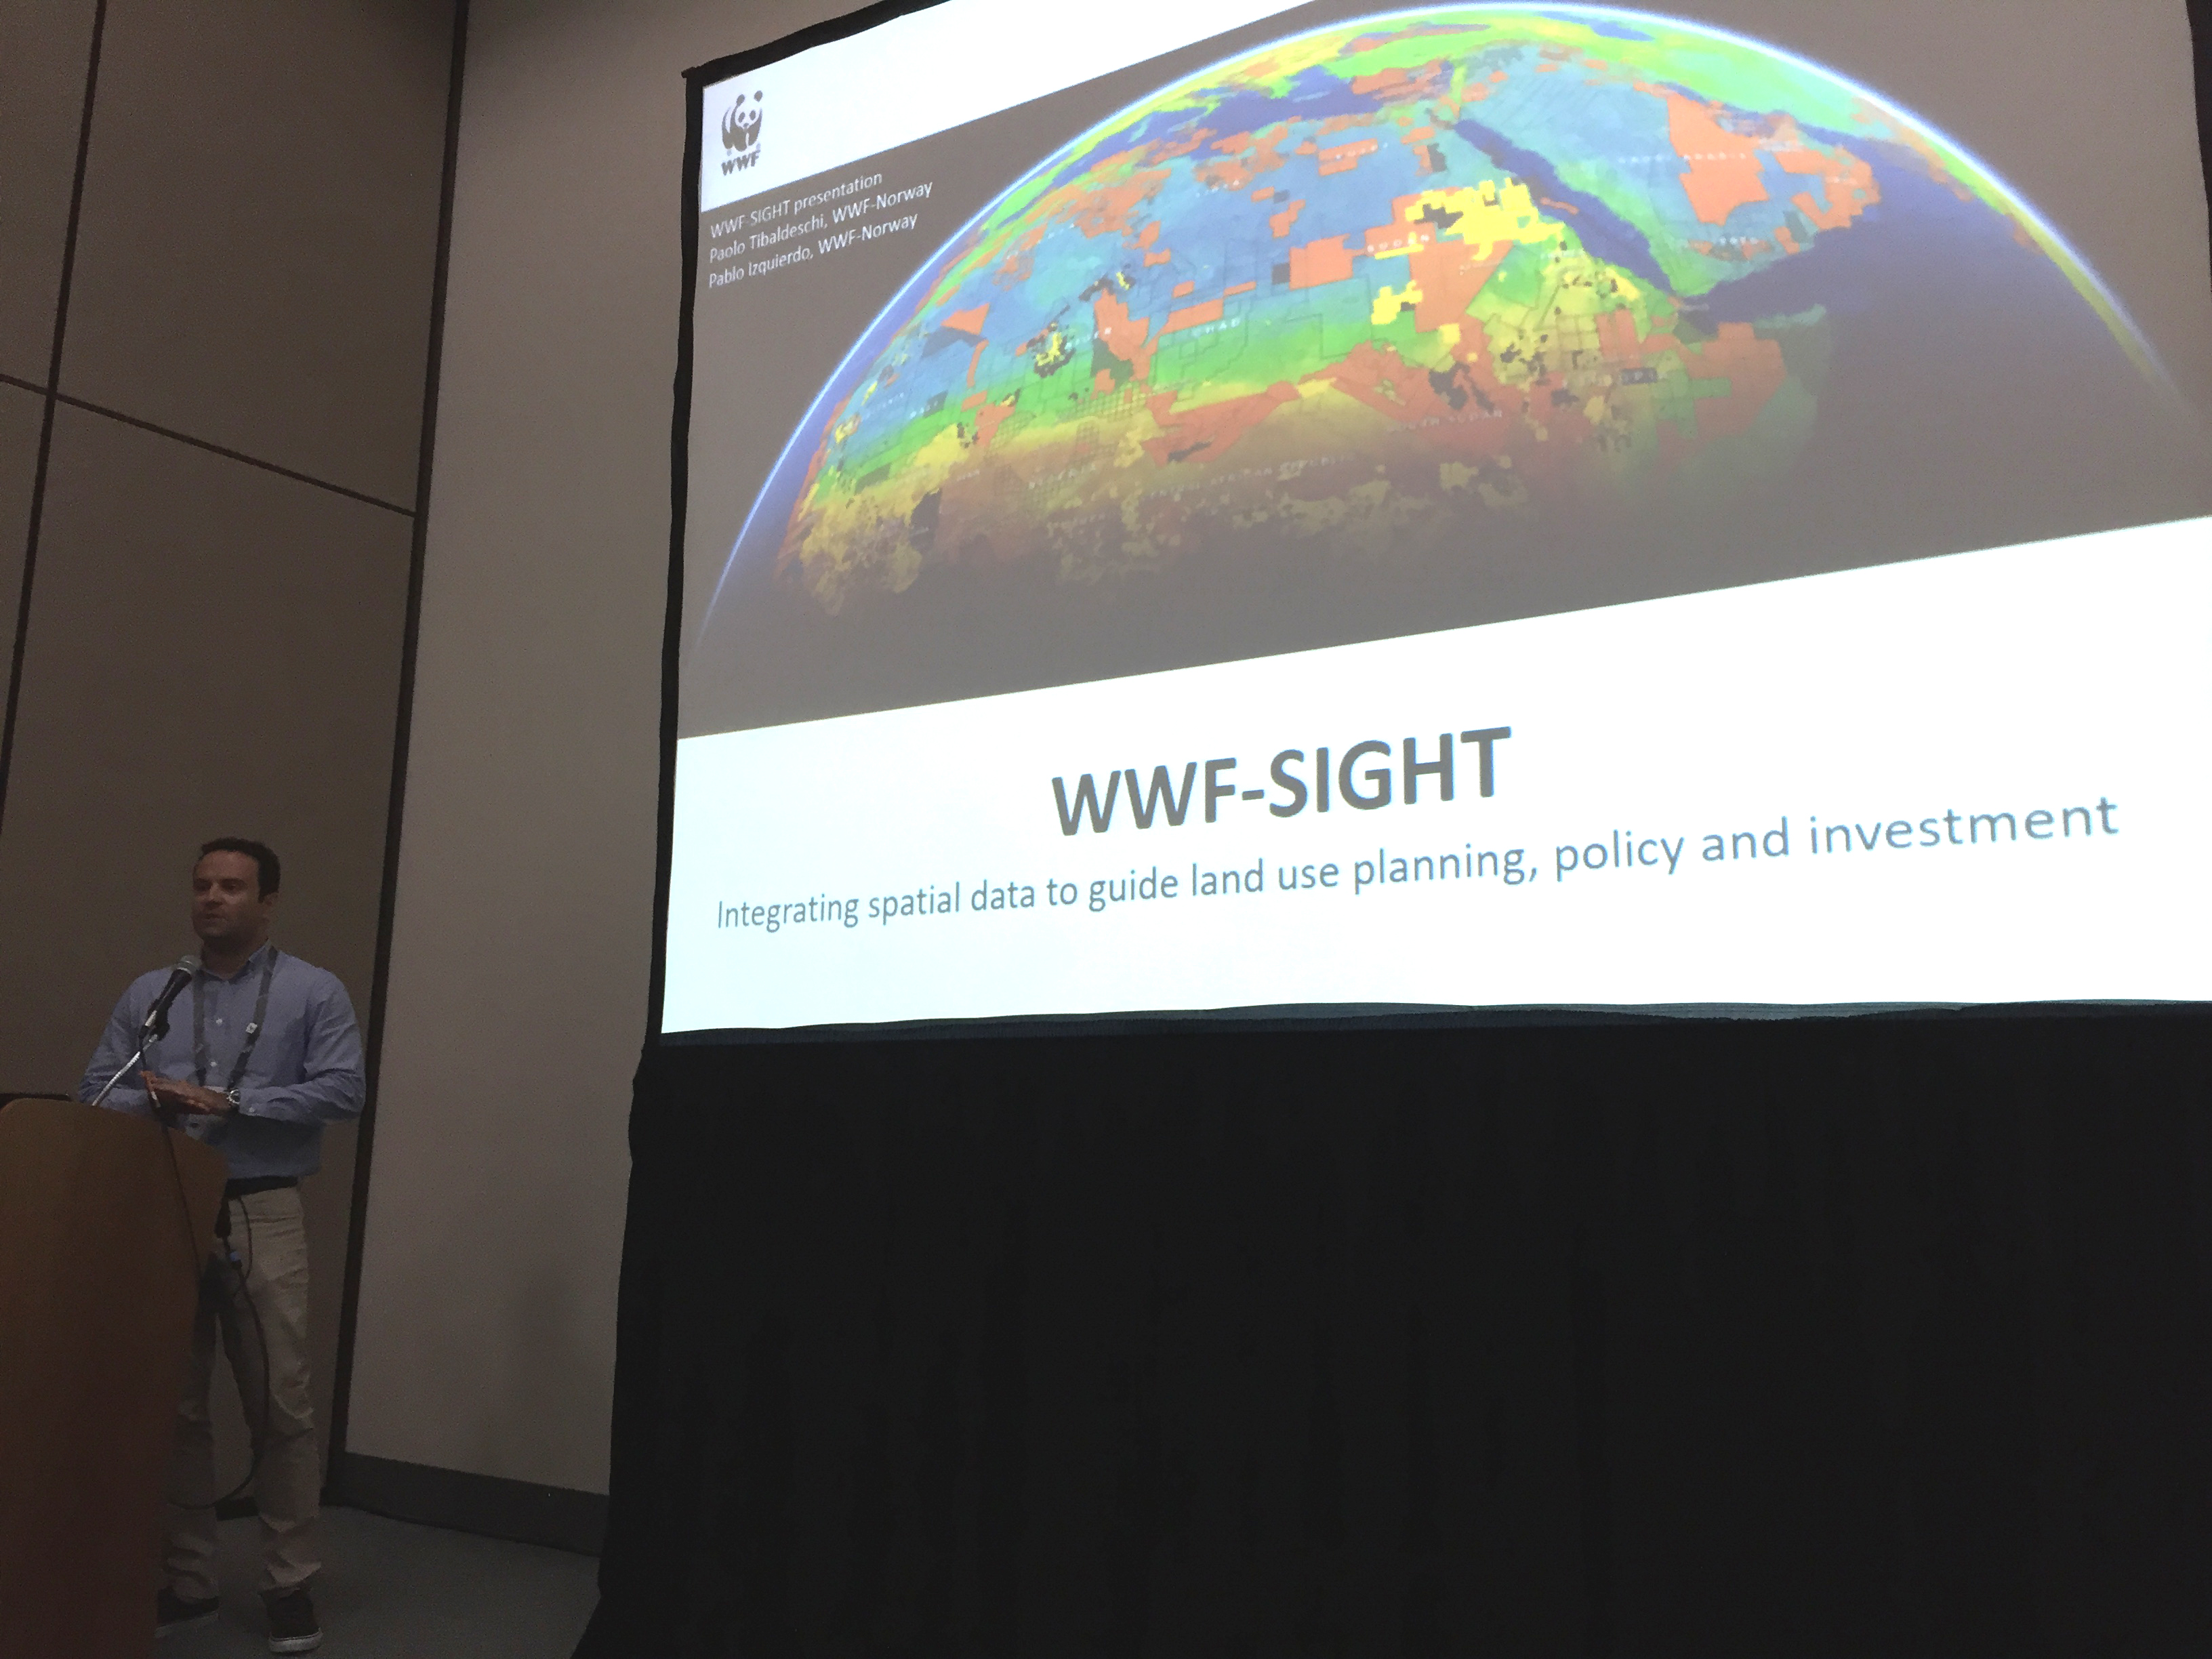 Paolo Tibaldeschi presenting WWF-SIGHT at one of the workshops at the ESRI UC 2017